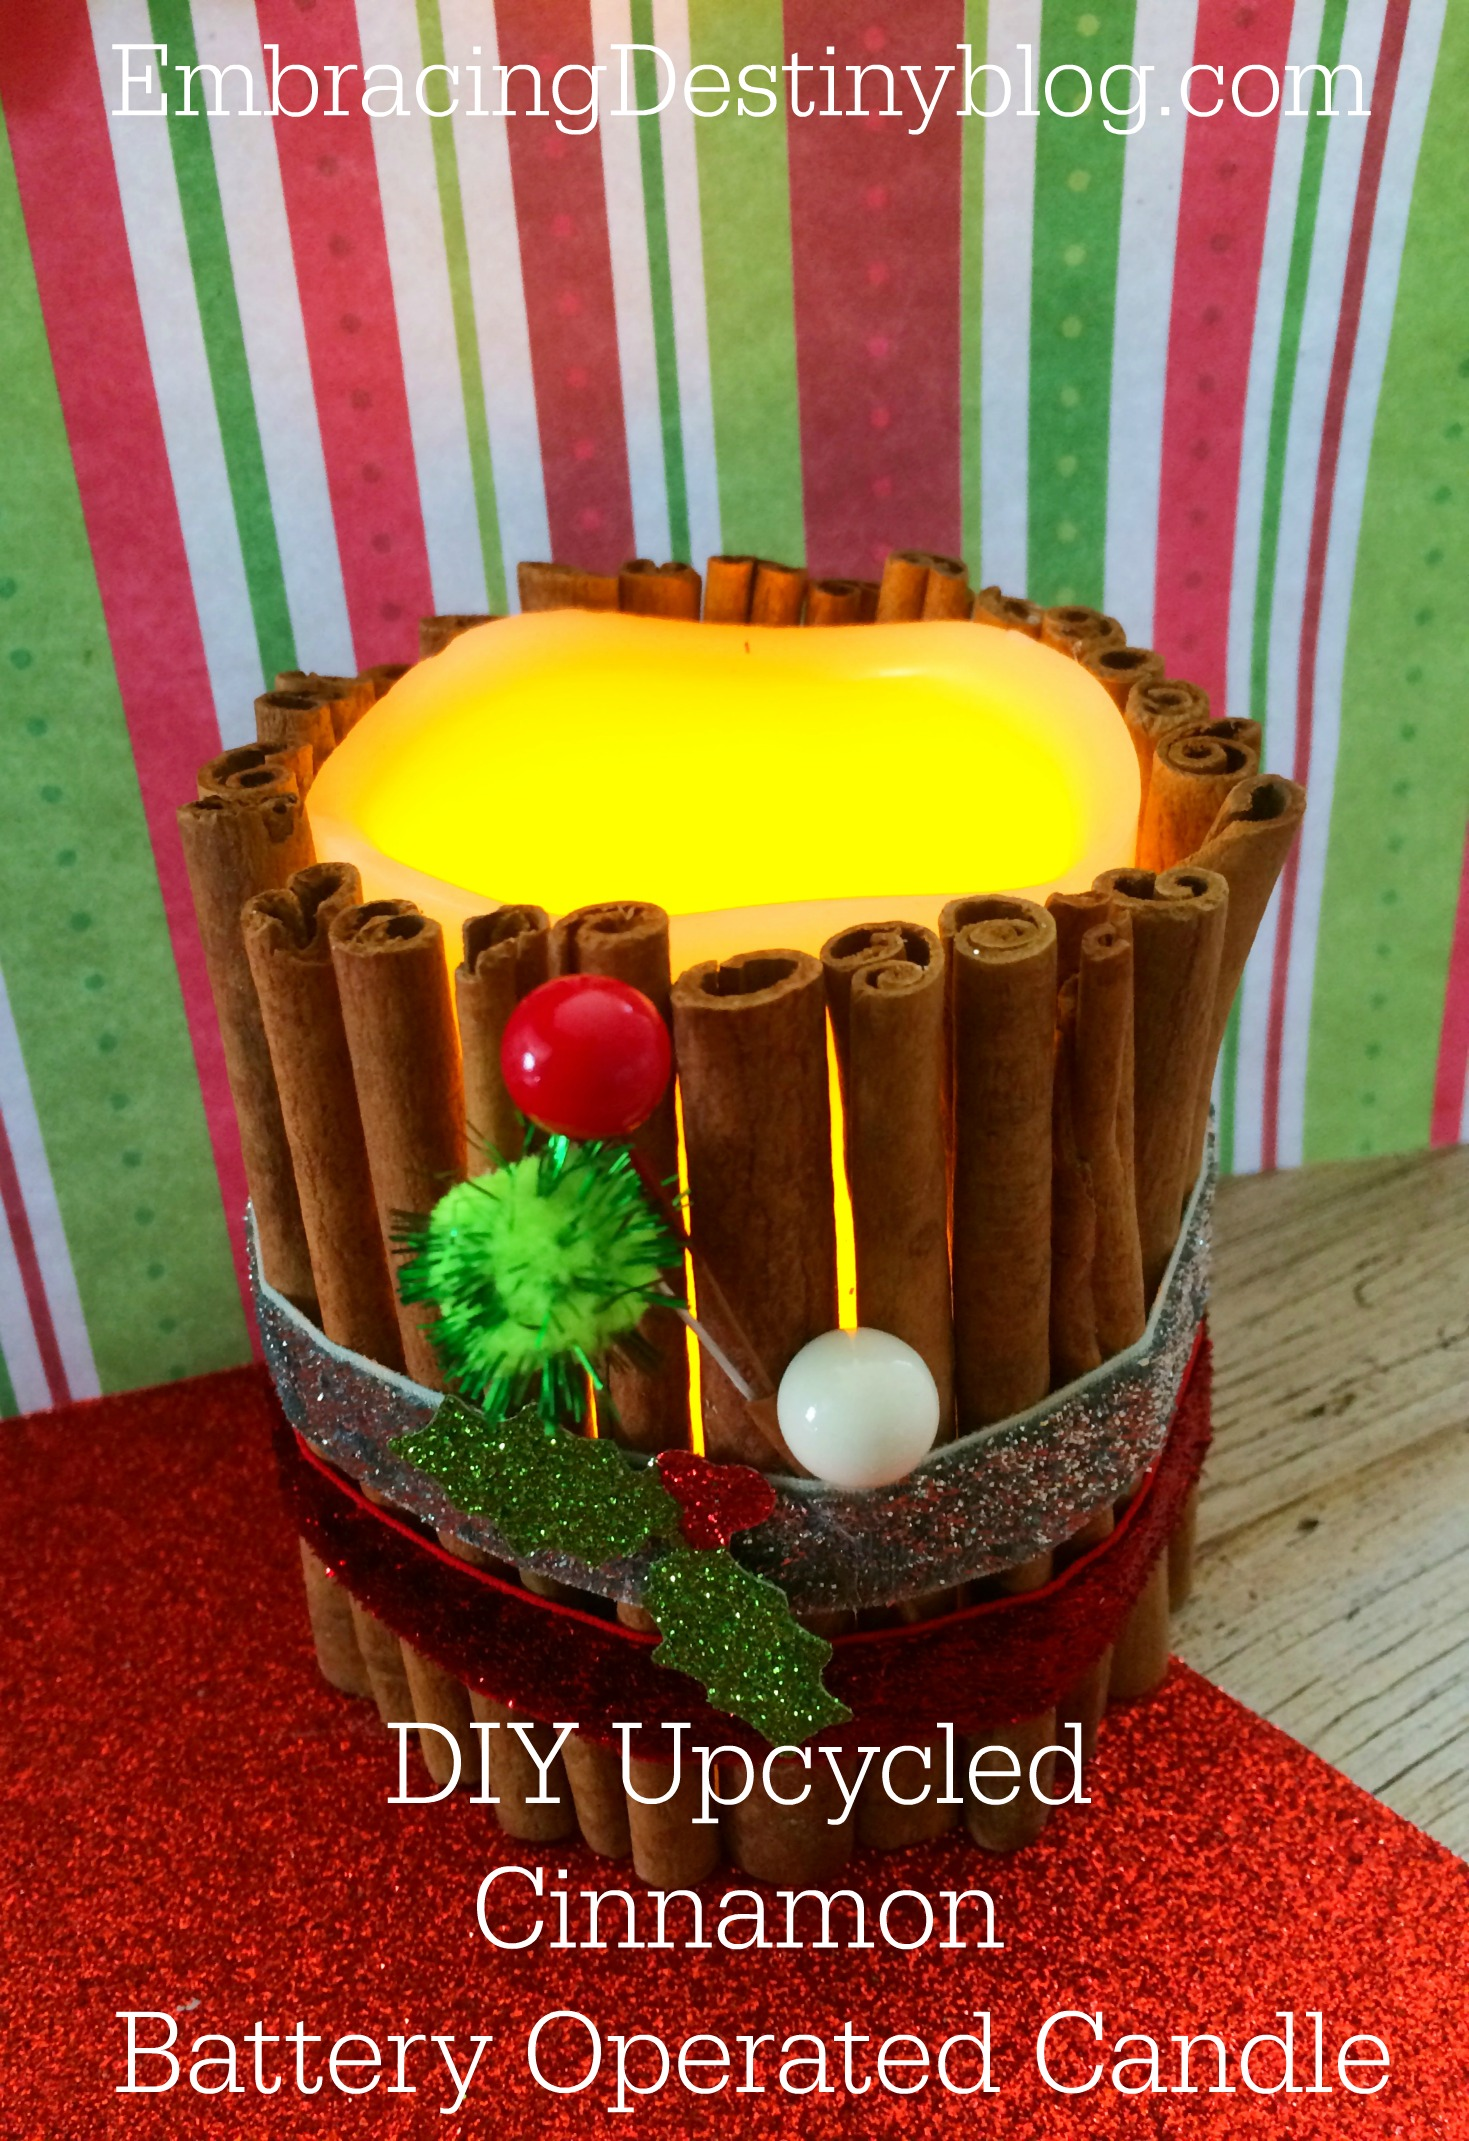 DIY Upcycled Cinnamon Battery Operated Candle